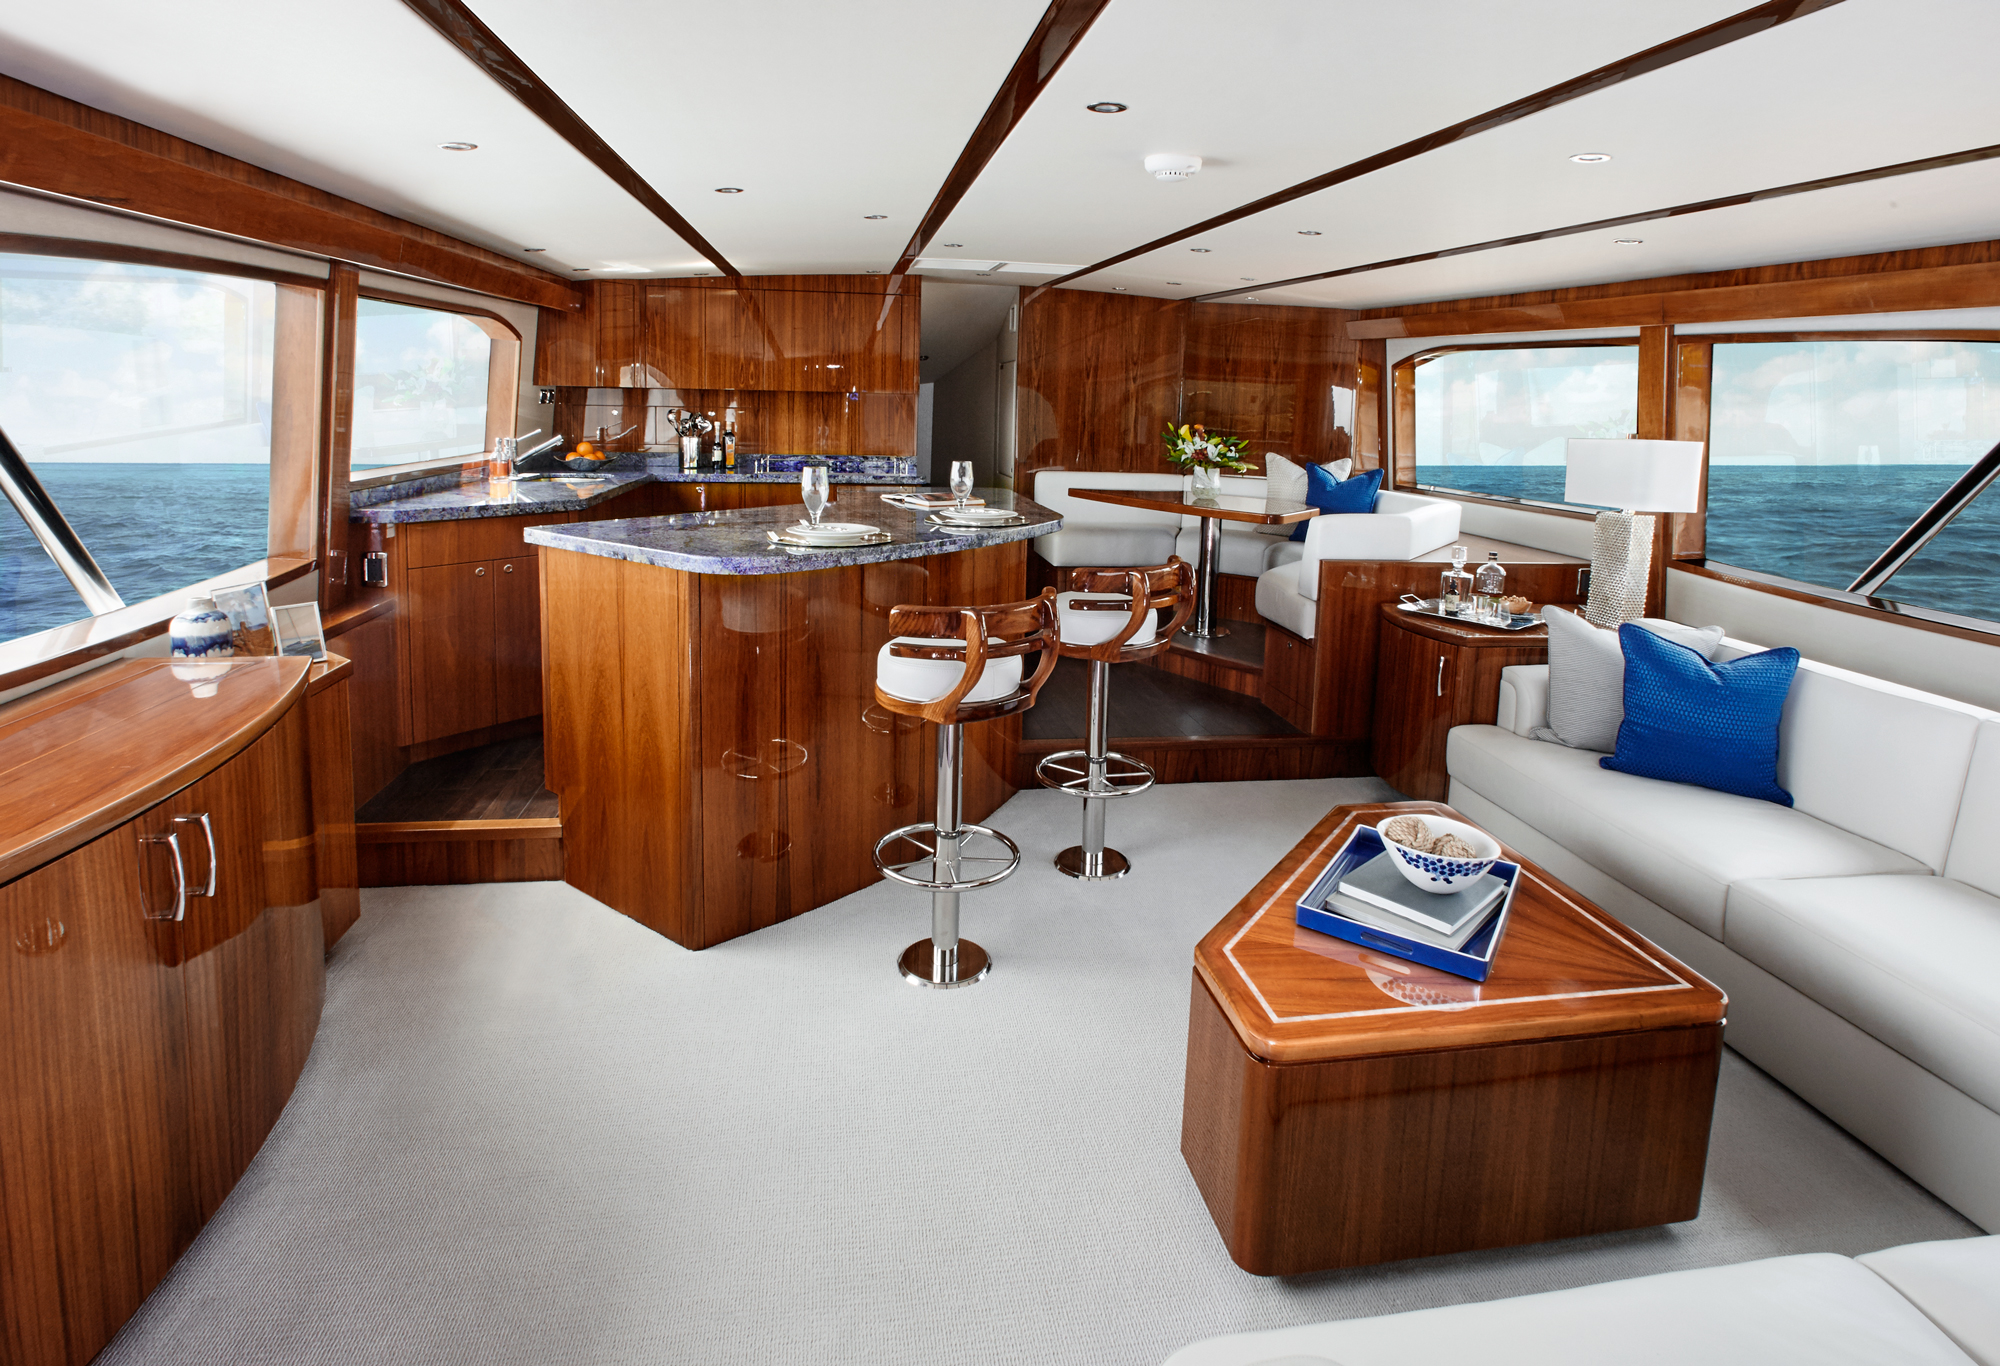 GT70 Convertible Sportfishing Yacht Hatteras Yachts